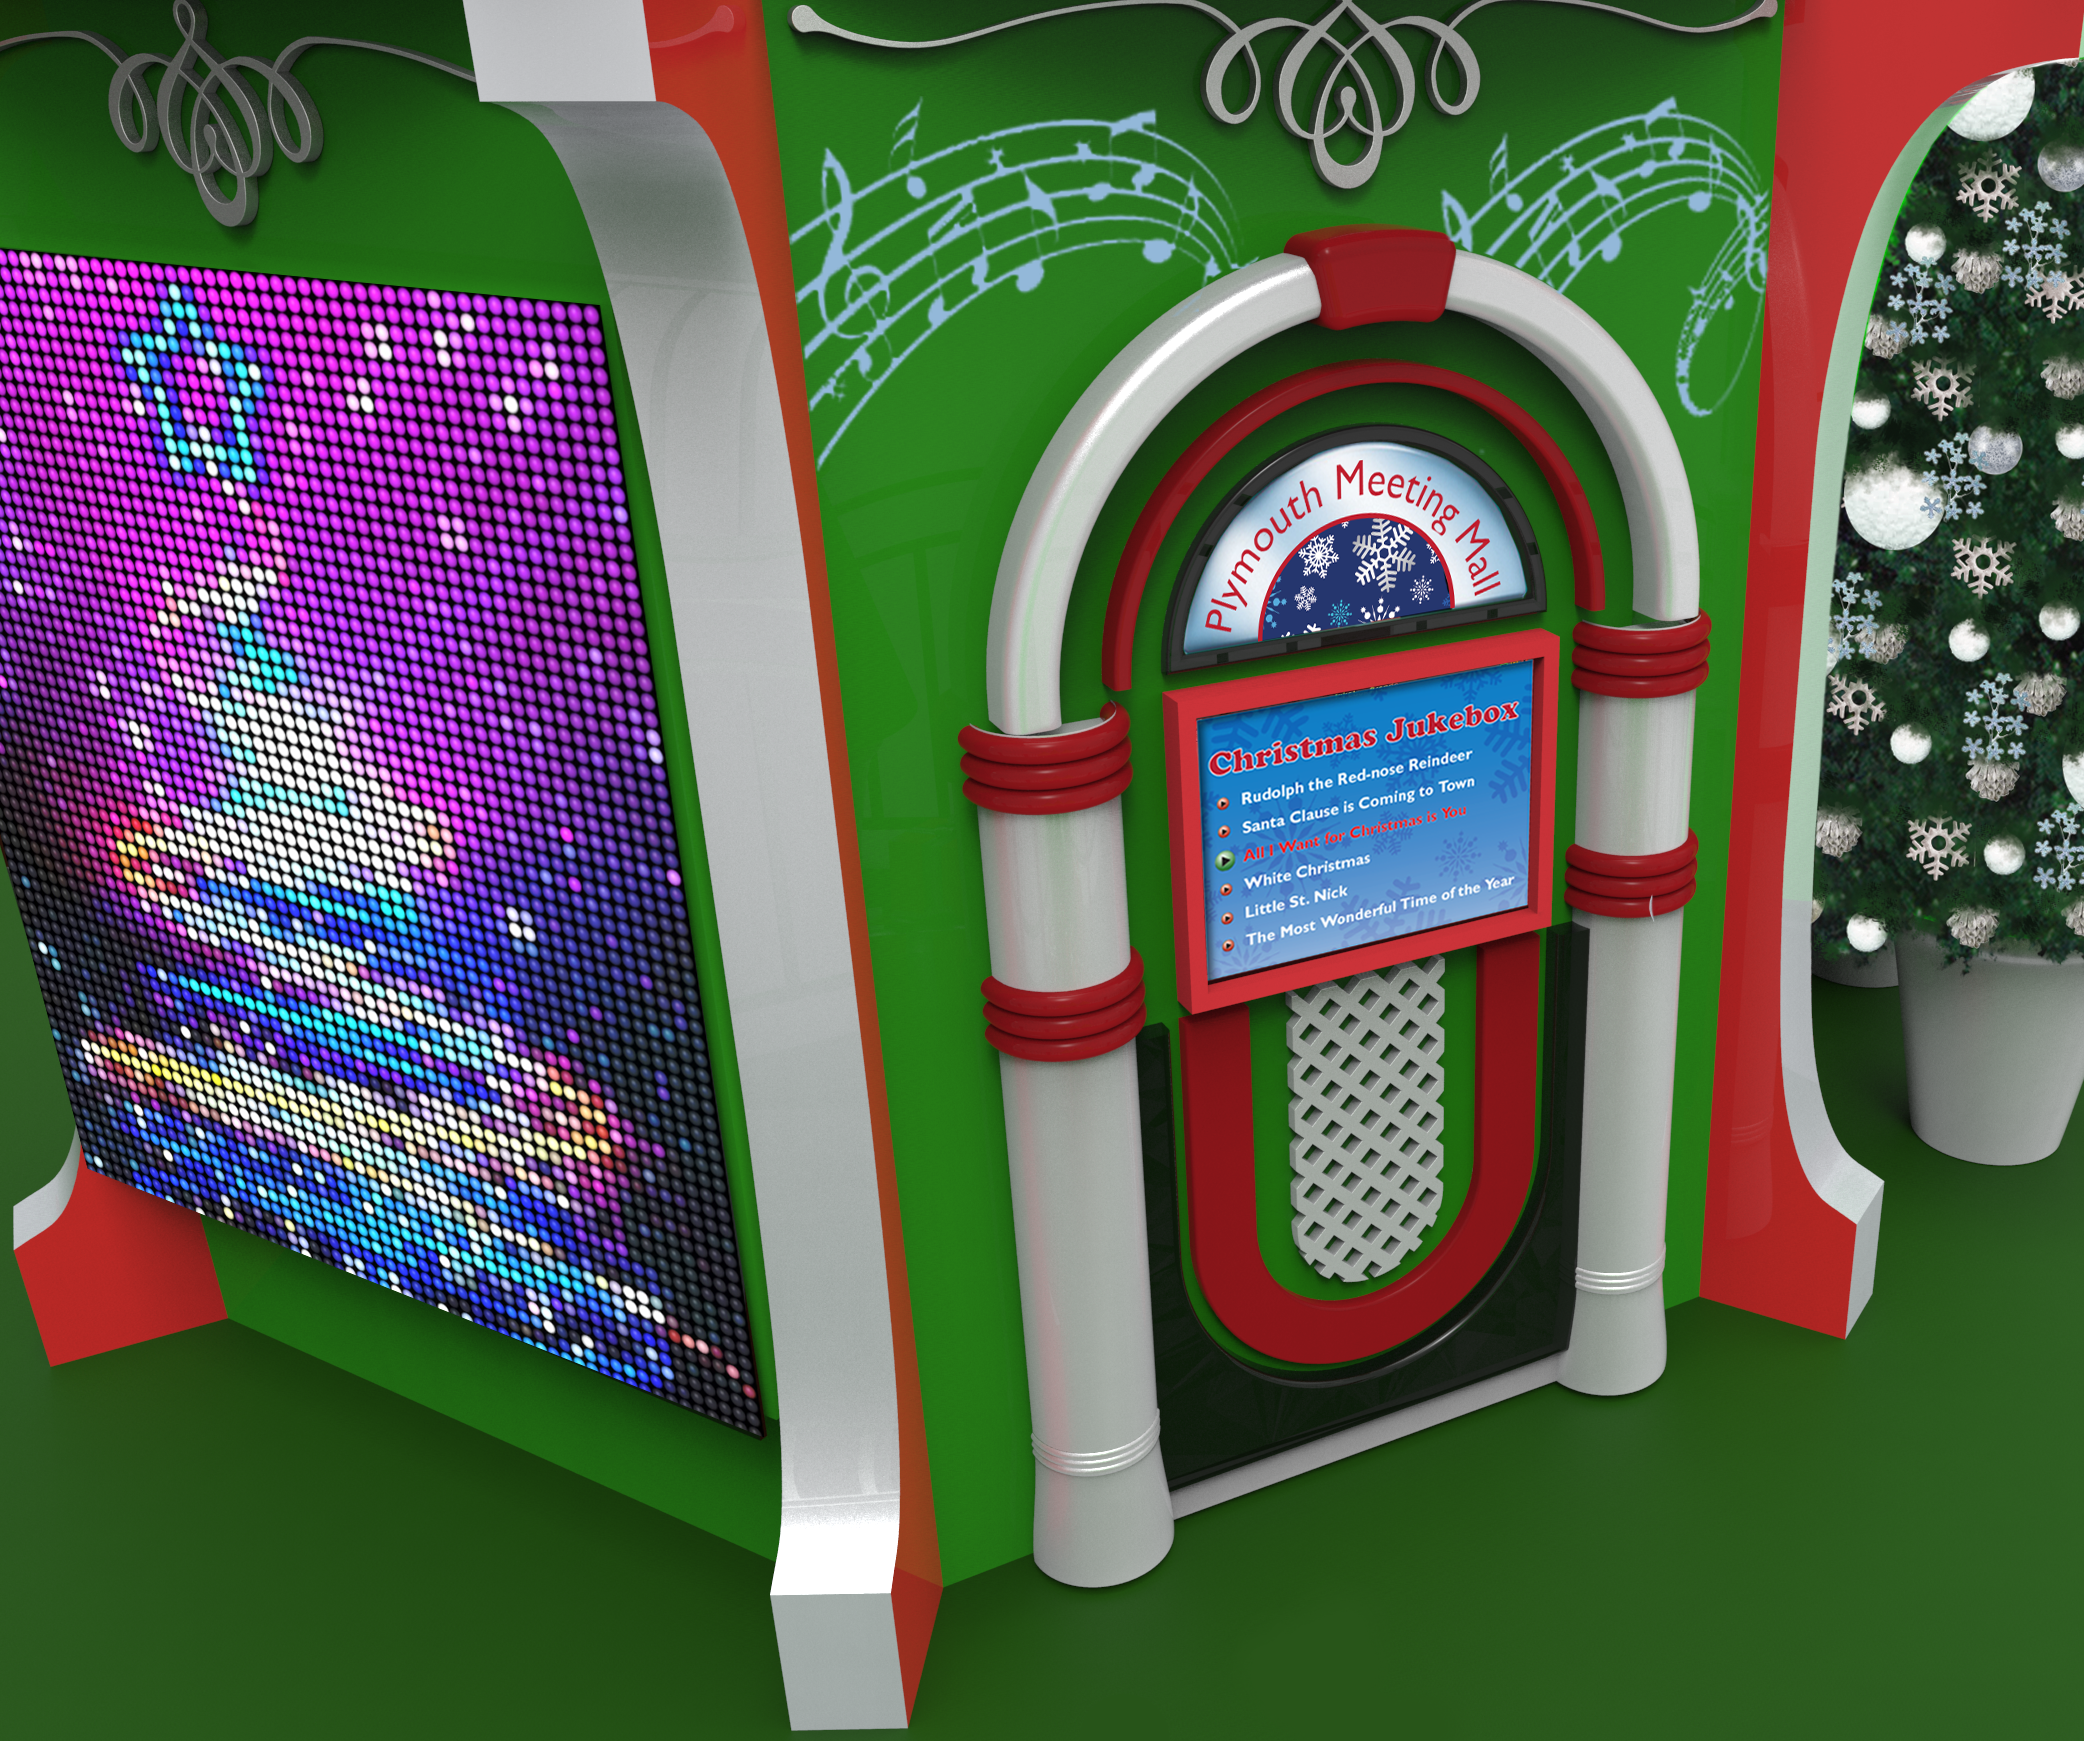 Our interactive jukebox let's you play your favorite